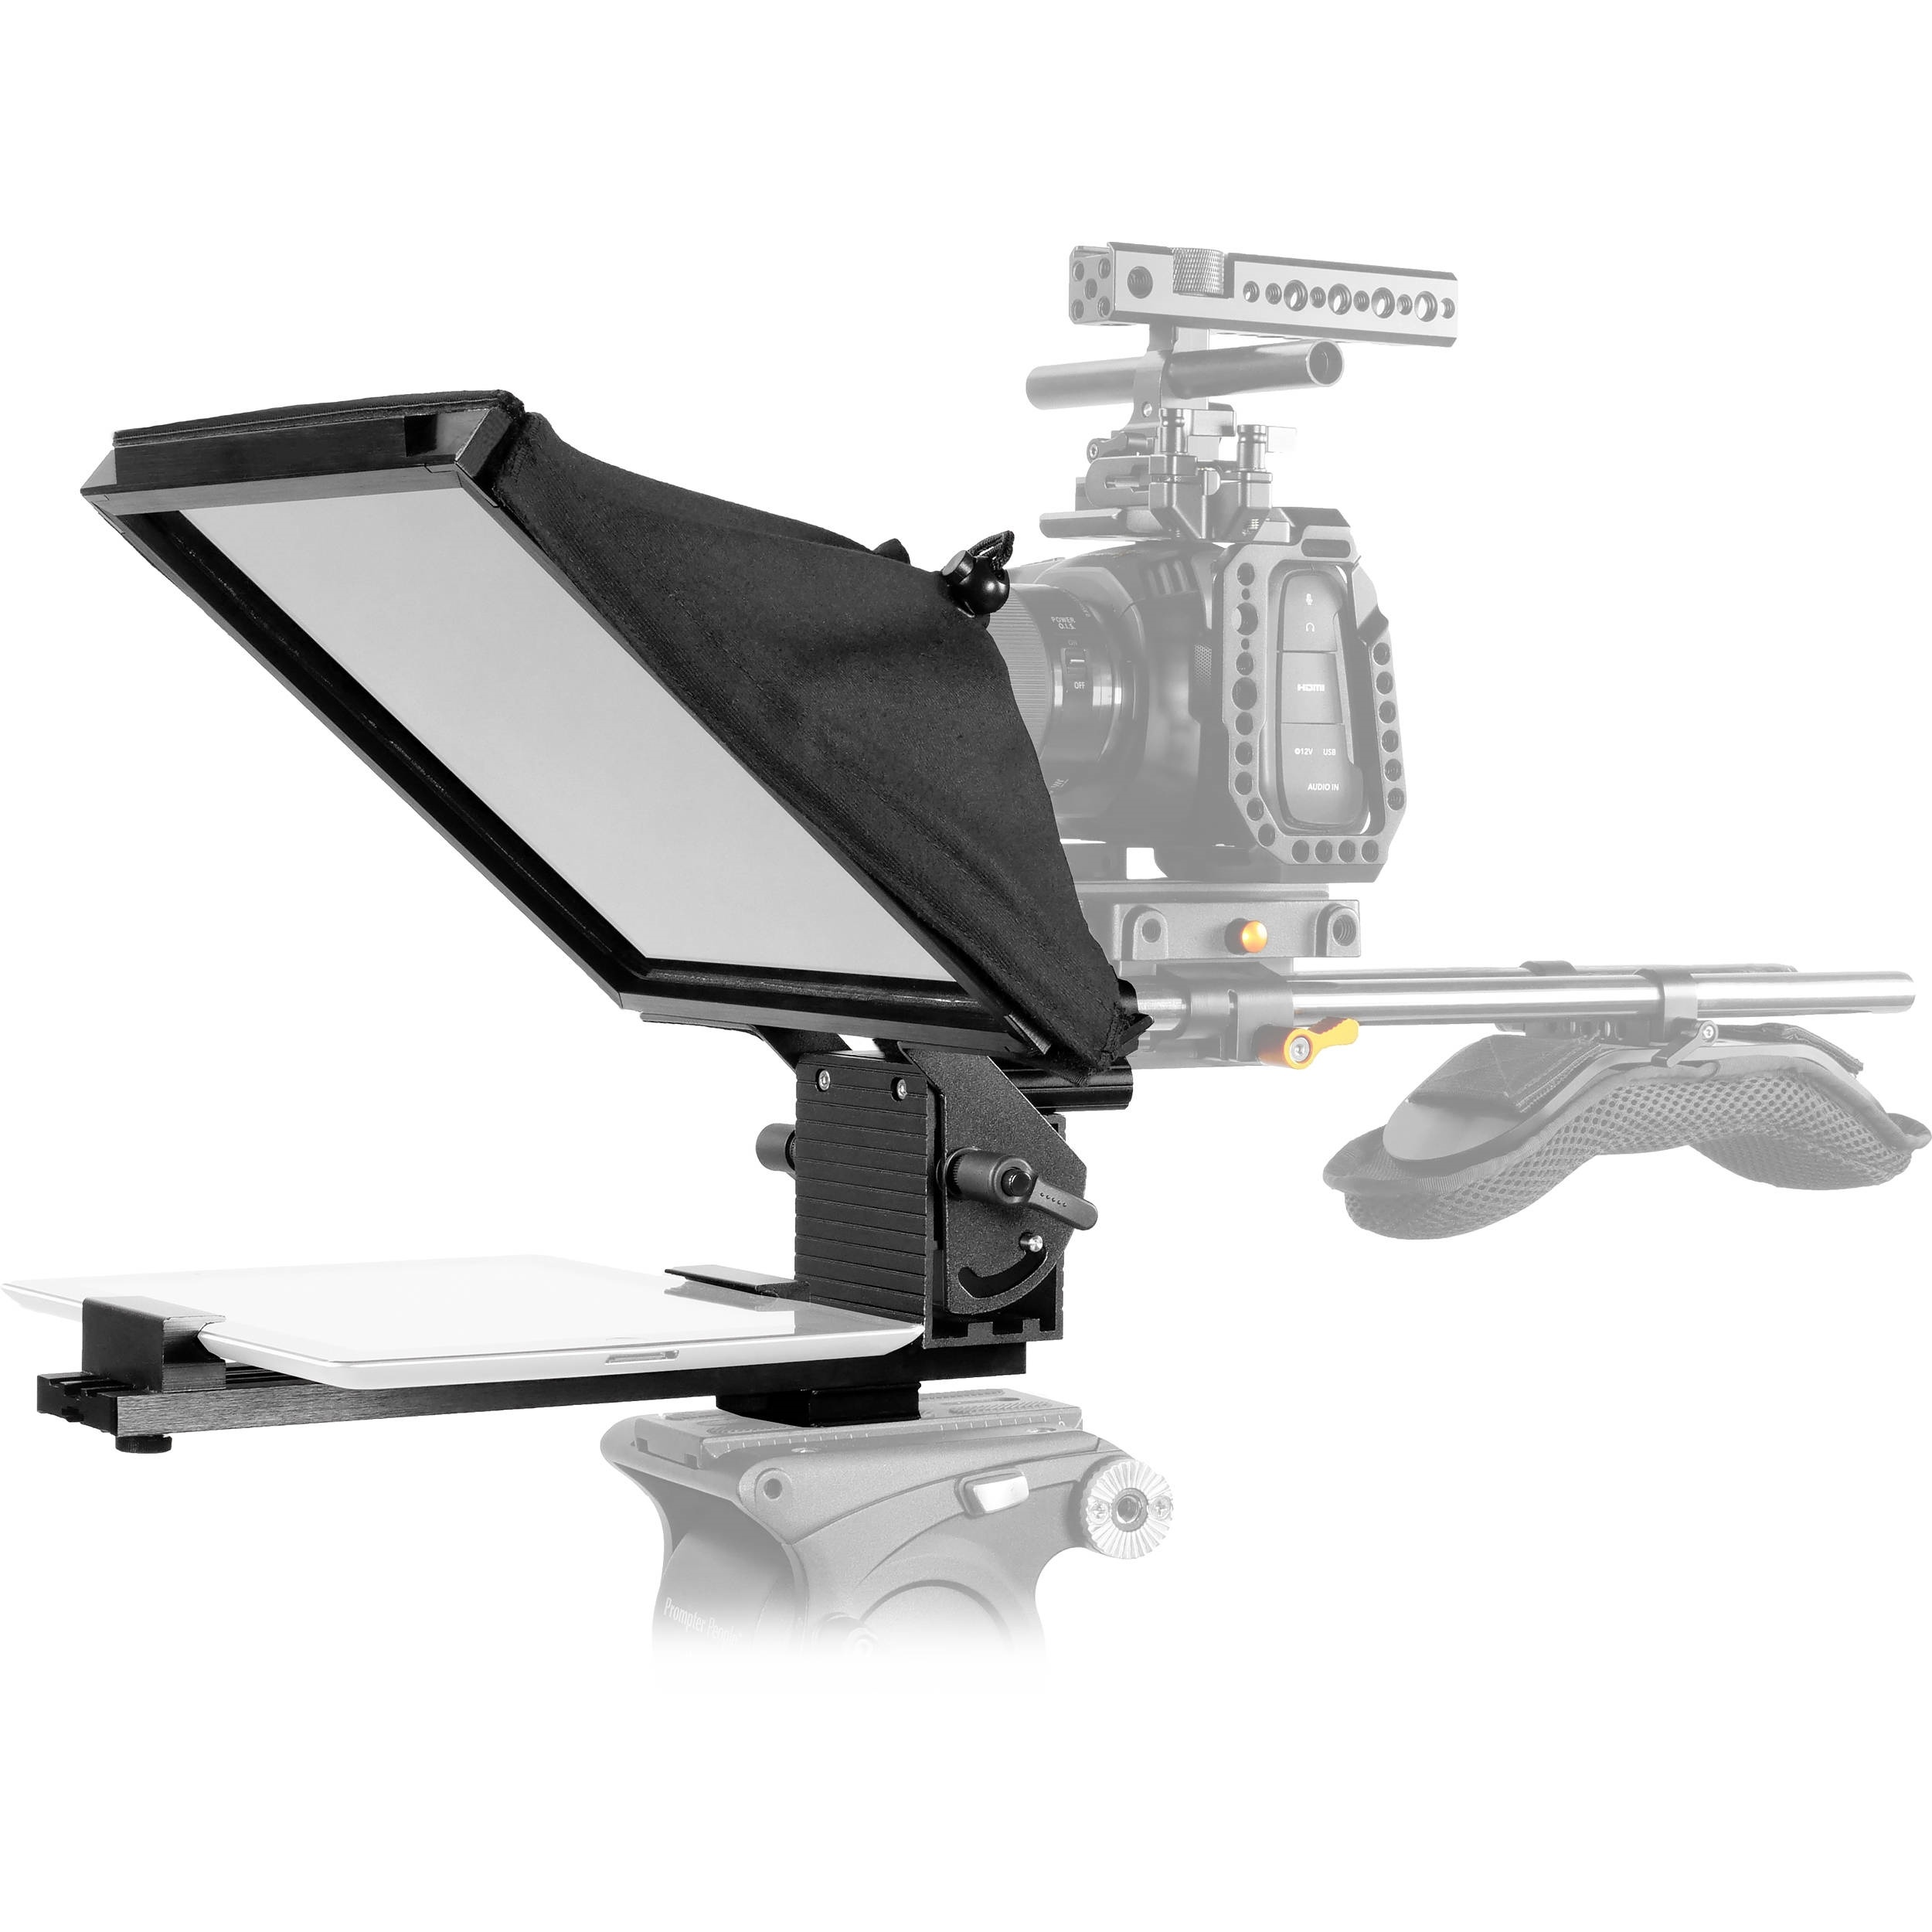 "Prompter People Prompter Pal PAL-iPAD-15mm Teleprompter w/ Tablet Cradle, 10 x 10"", 15mm Rod Block"